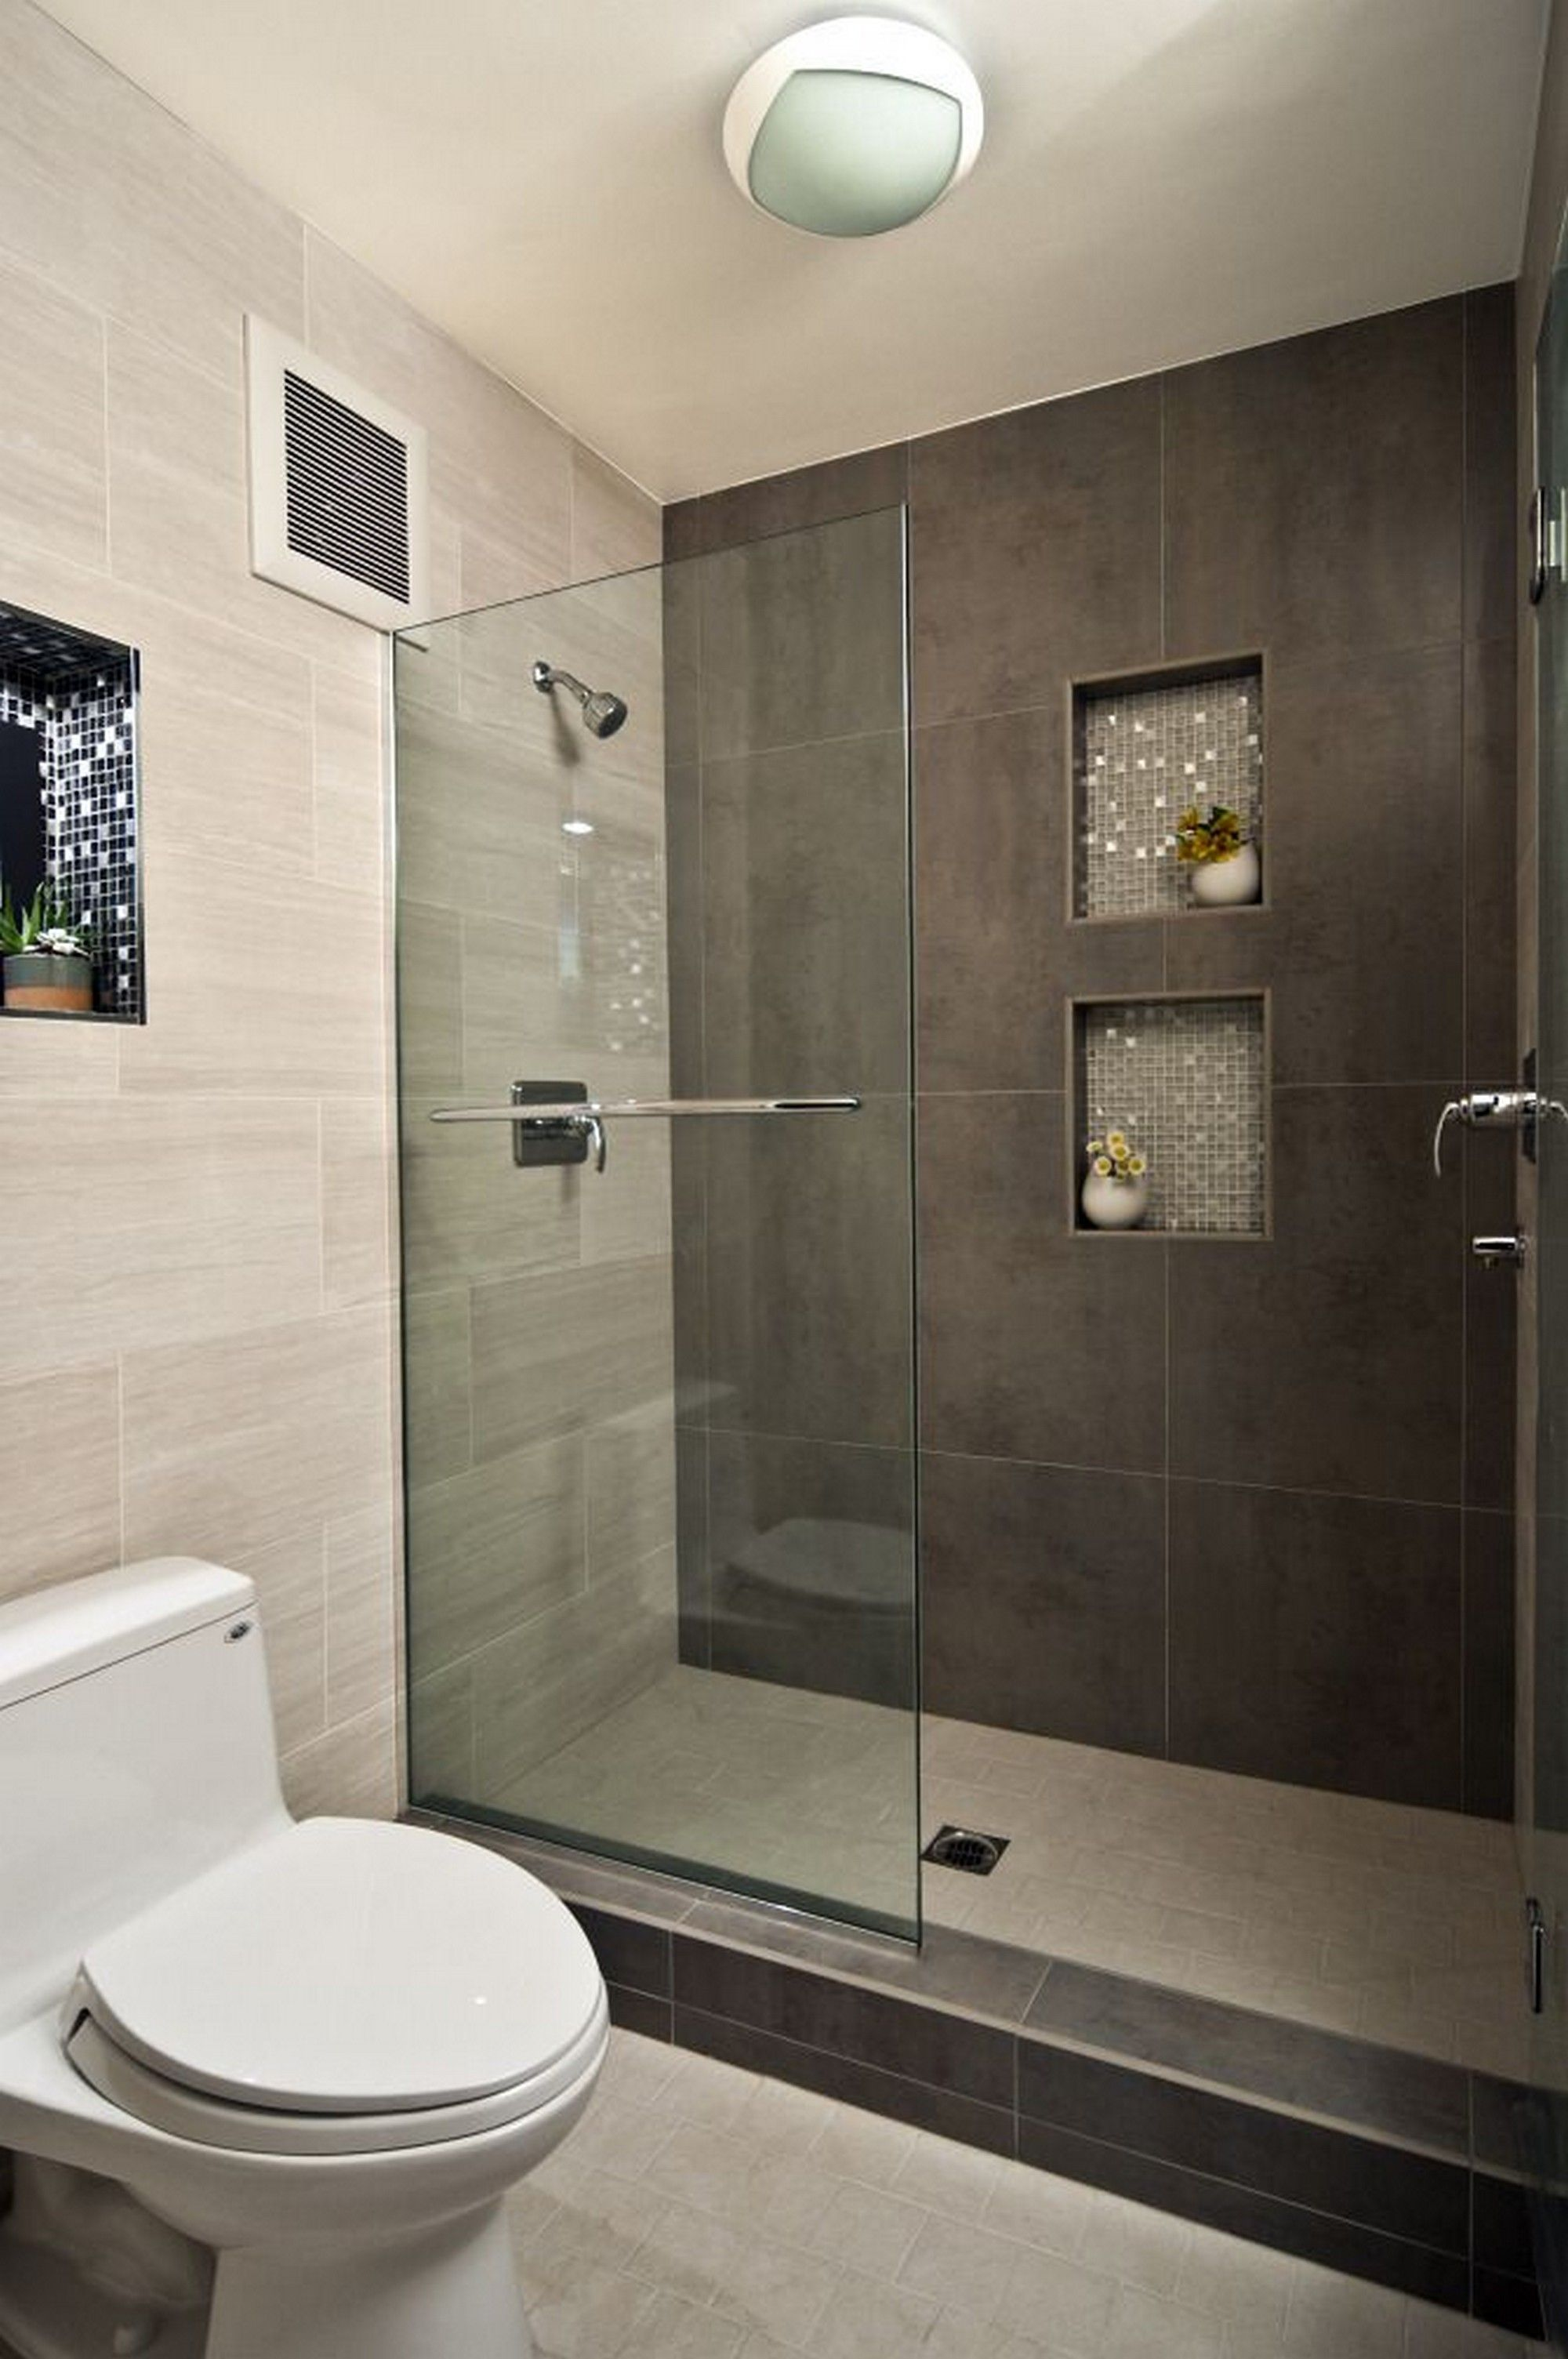 Best Kitchen Gallery: Modern Bathroom Design Ideas With Walk In Shower Small Bathroom of Bathroom Design Photos  on rachelxblog.com